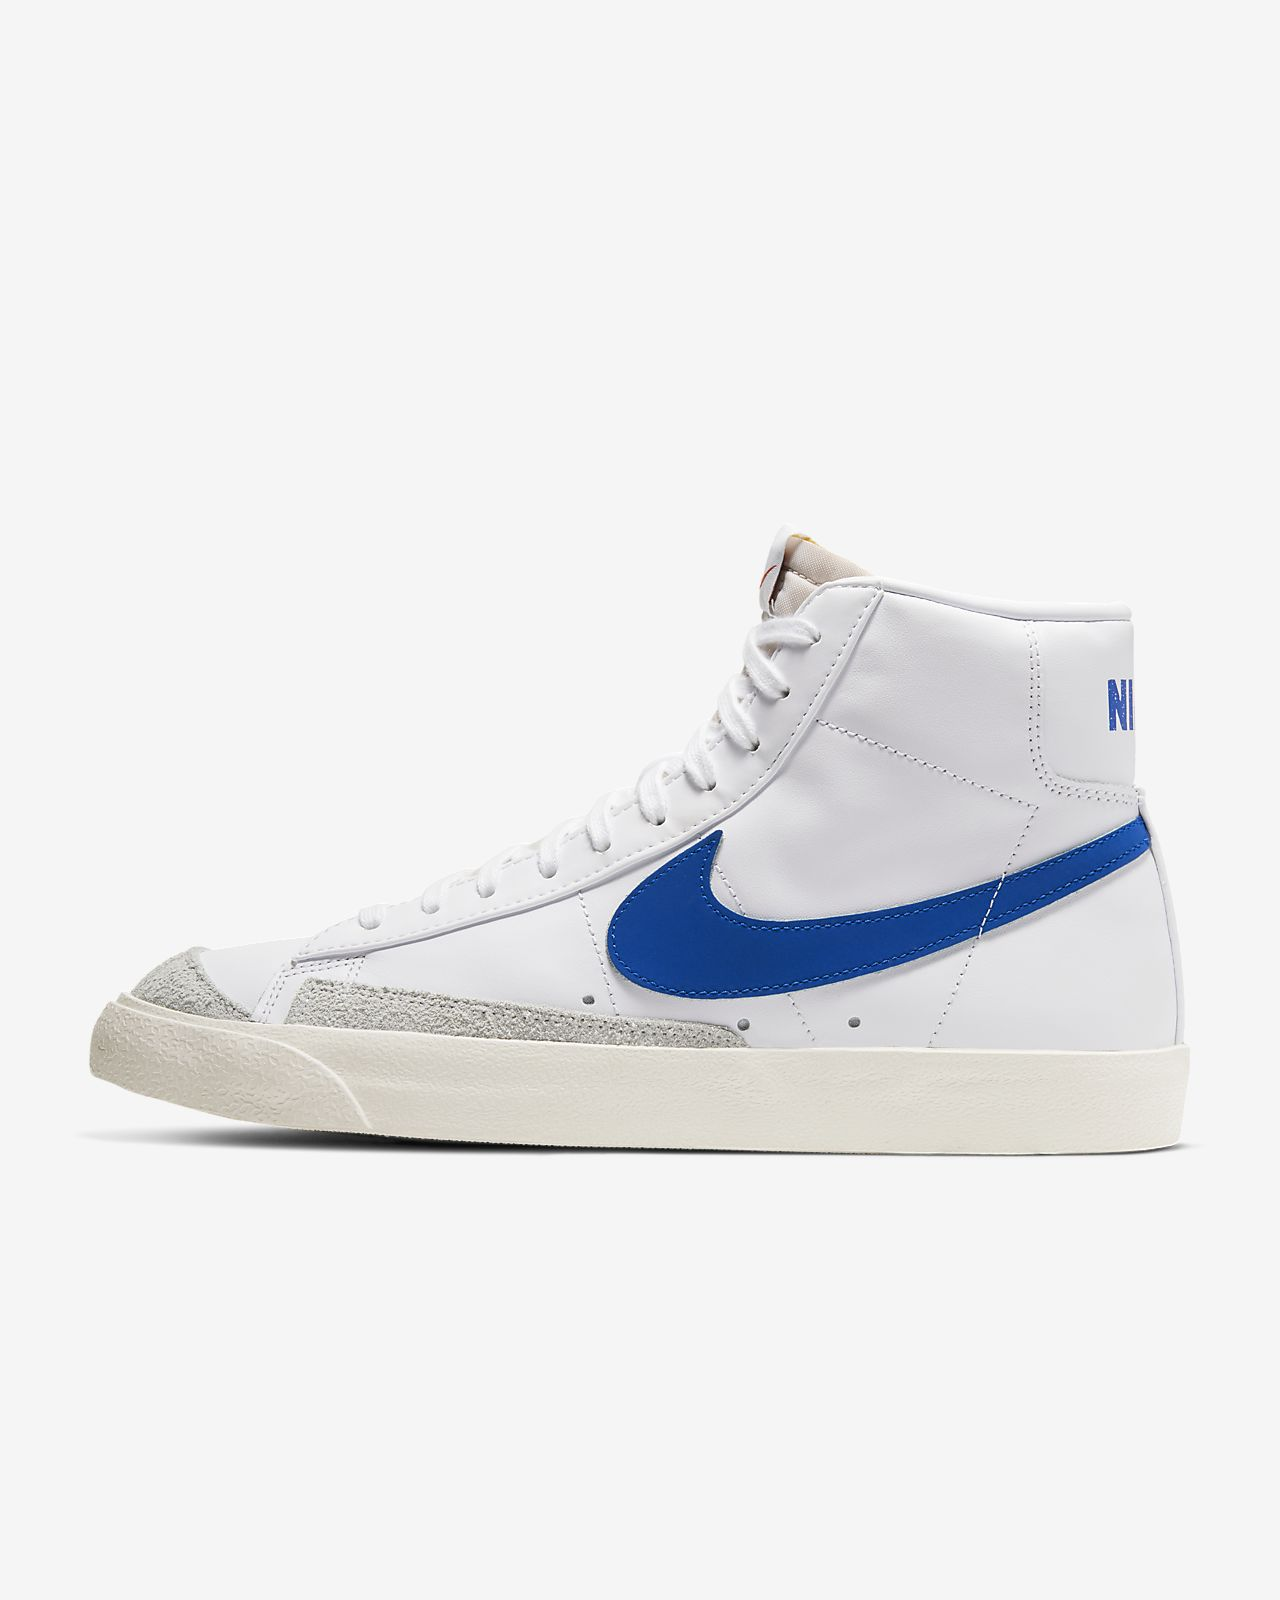 Womens Nike Blazer Cheap, Women's Nike Blazer Shoes